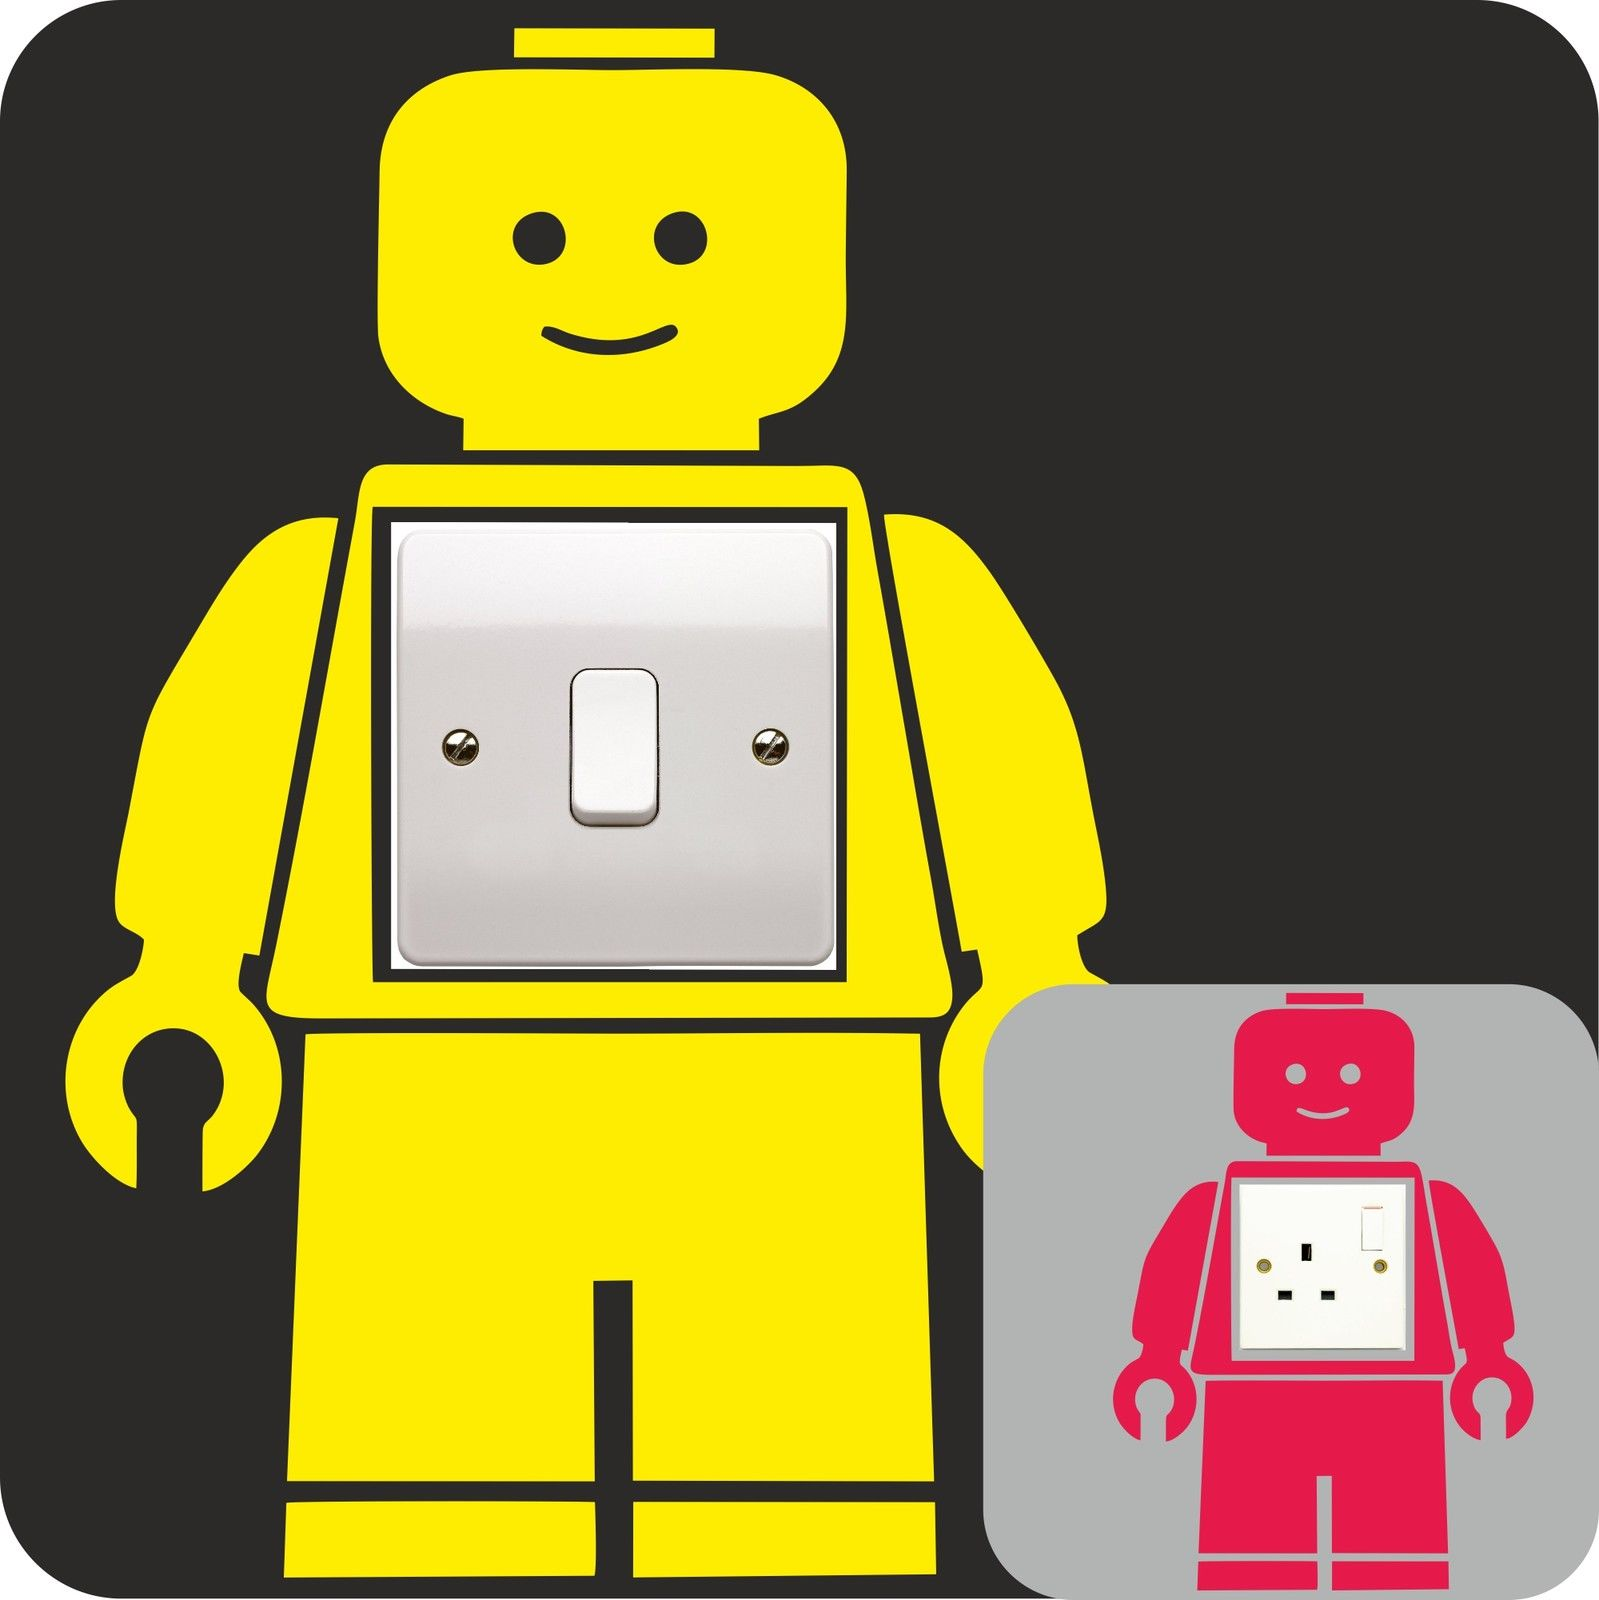 LEGO MAN vinyl decal LIGHT SWITCH PLUG SURROUND bedroom WALL sticker ...